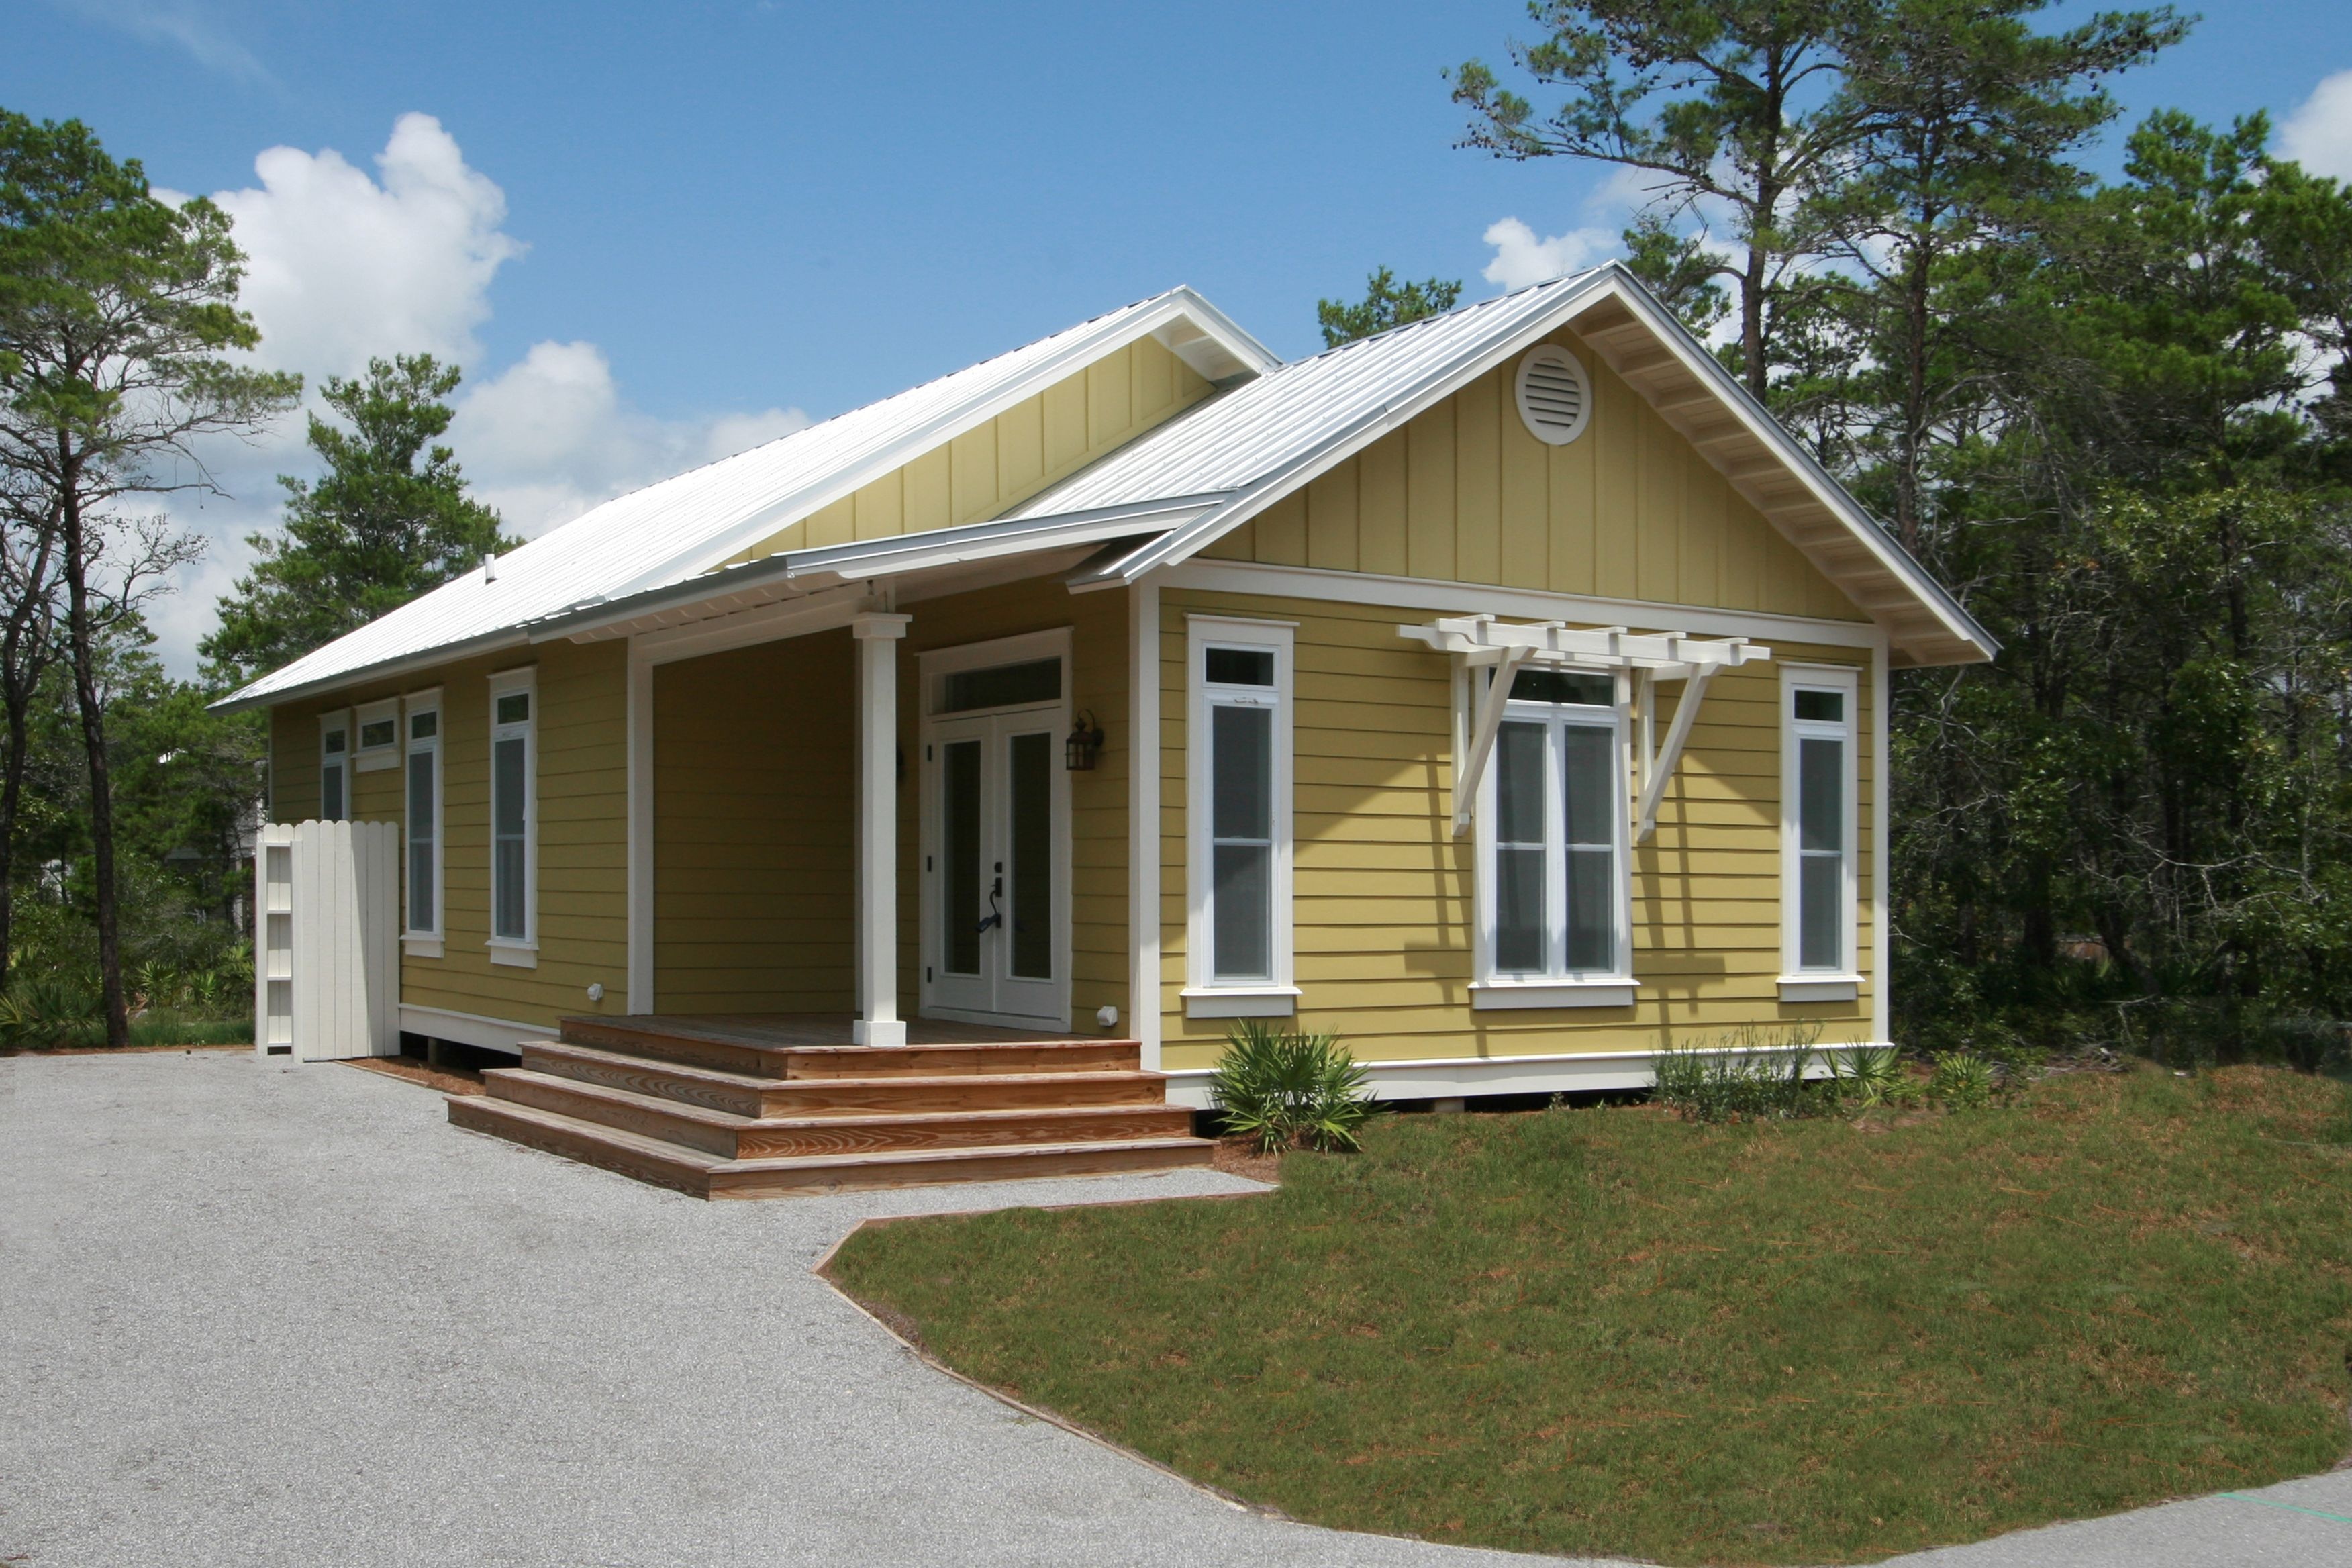 Custom ranch coastal modular home design by Nationwide